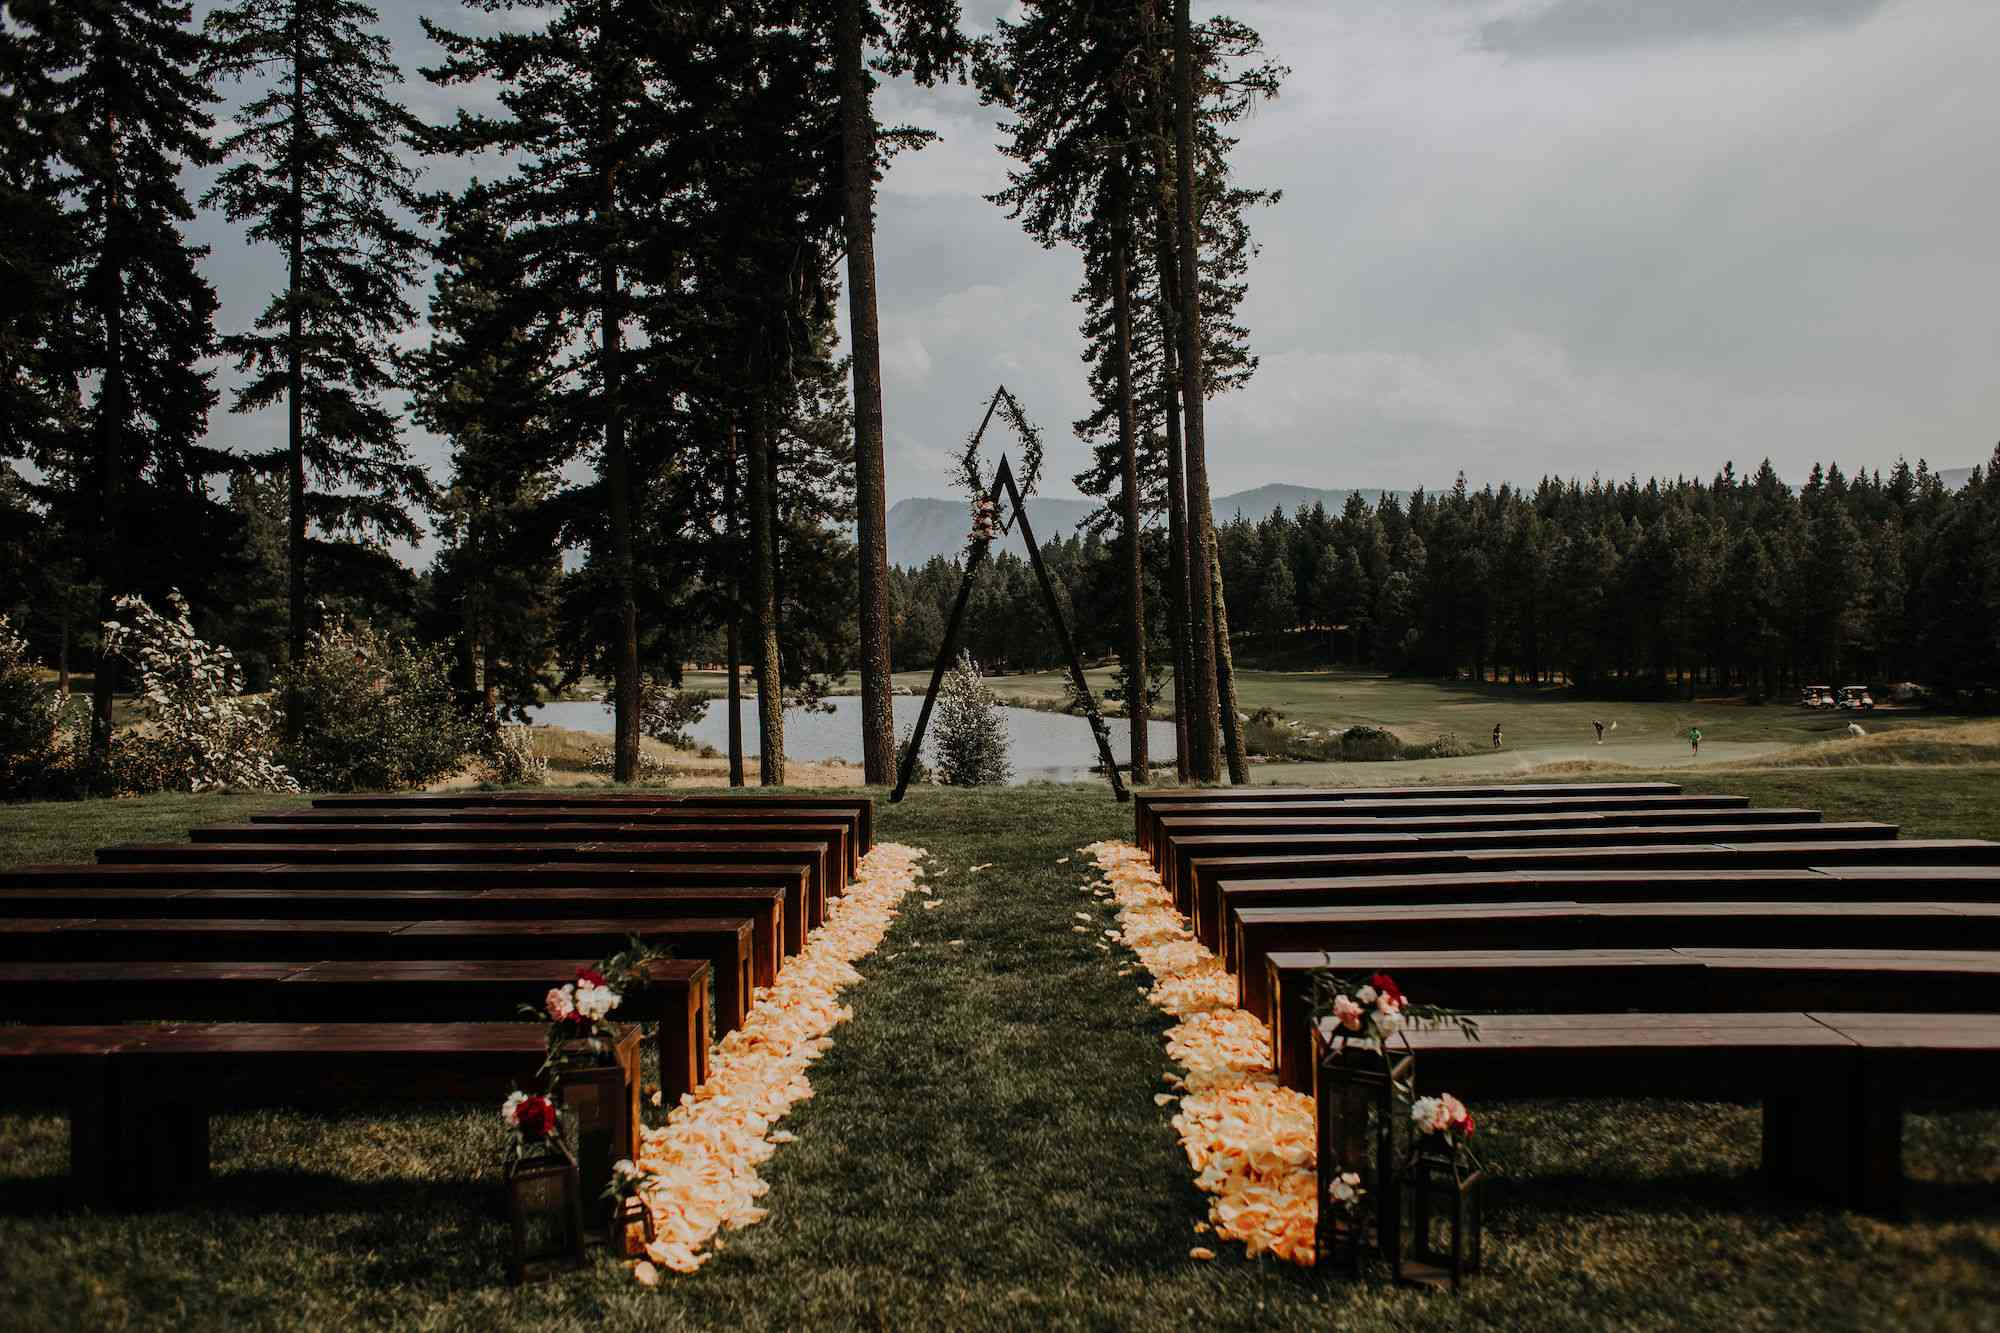 Ceremony with pew benches and bright coral petals lining the aisle to a triangle arch in front of a lake